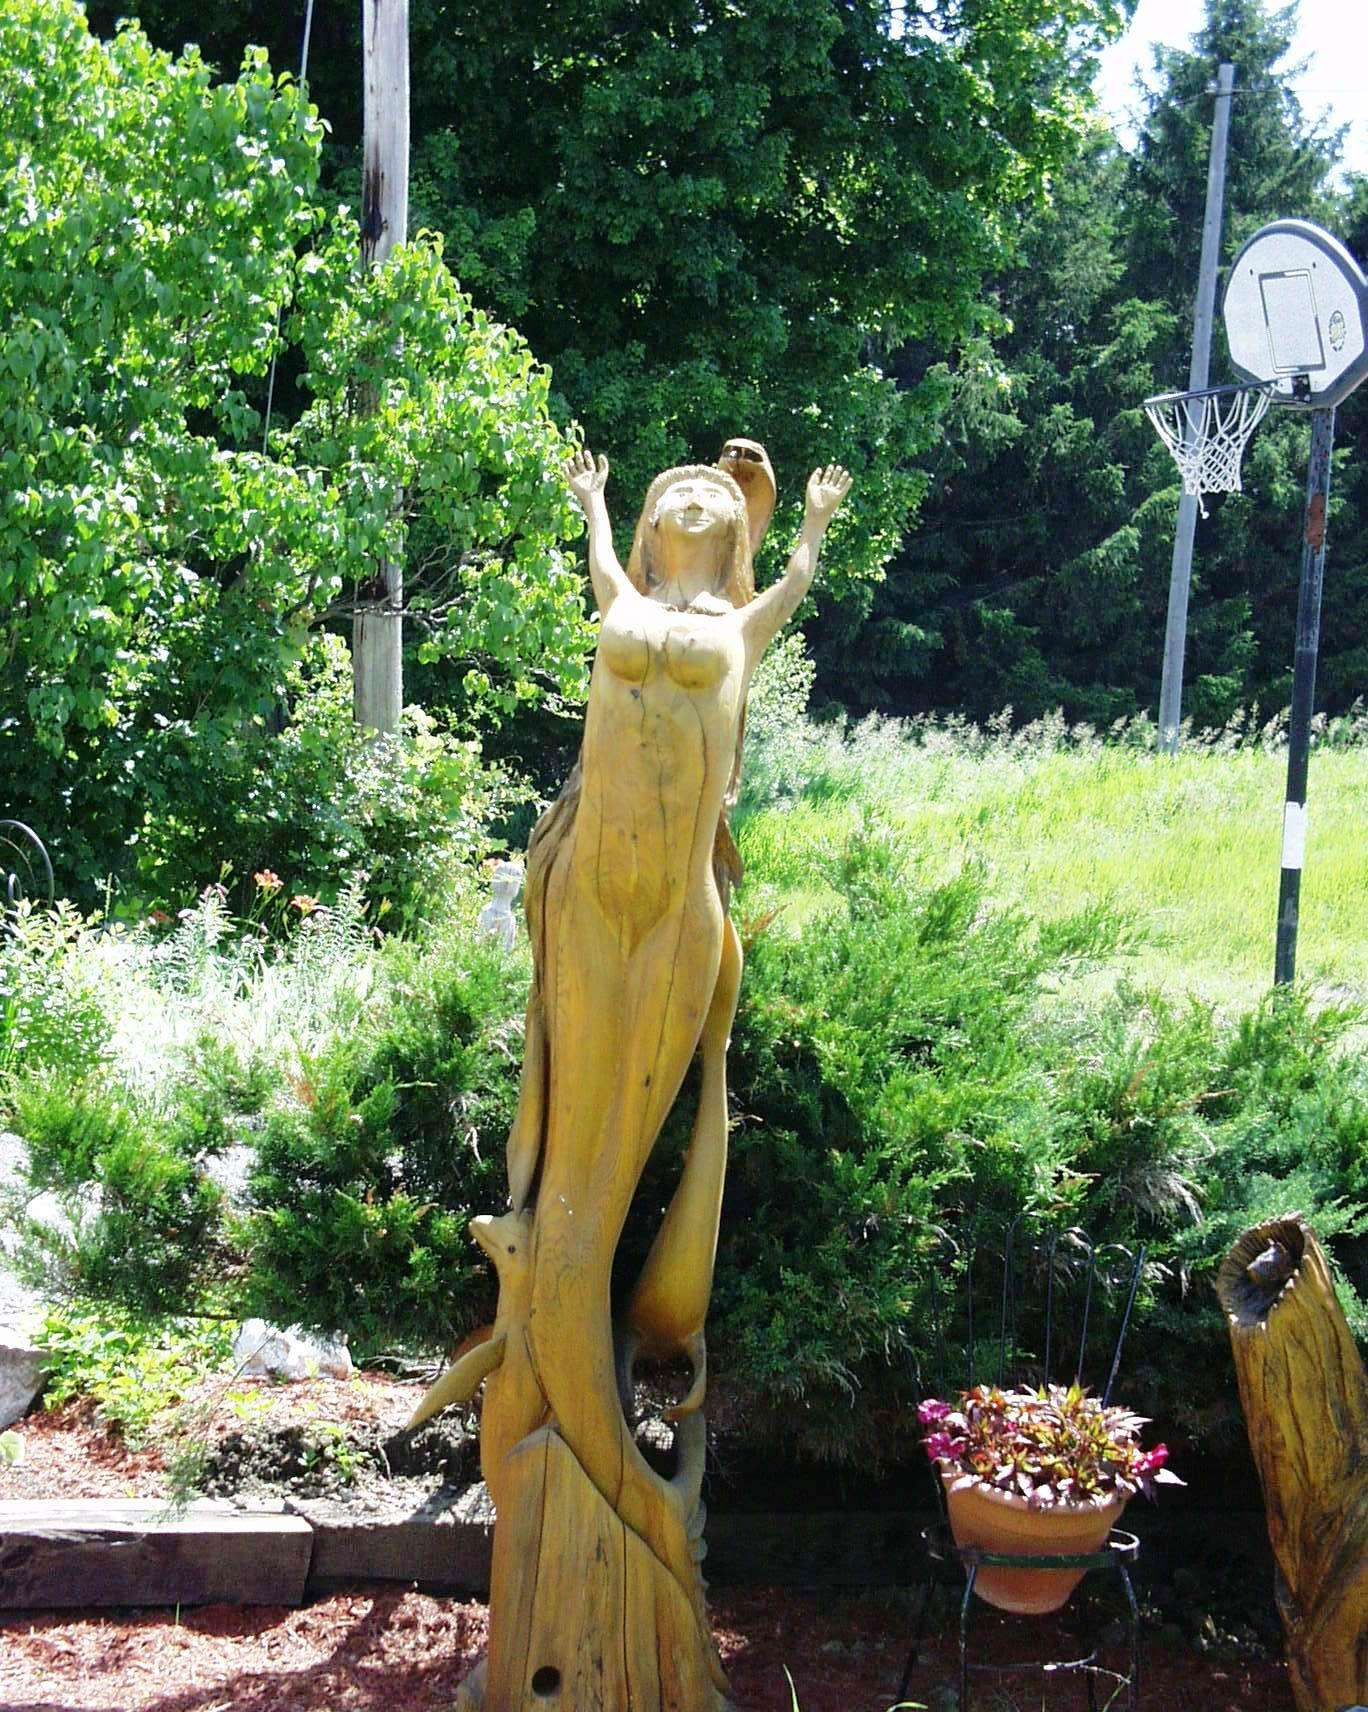 Chainsaw carvings at robbins amazing art in ridgetown ontario